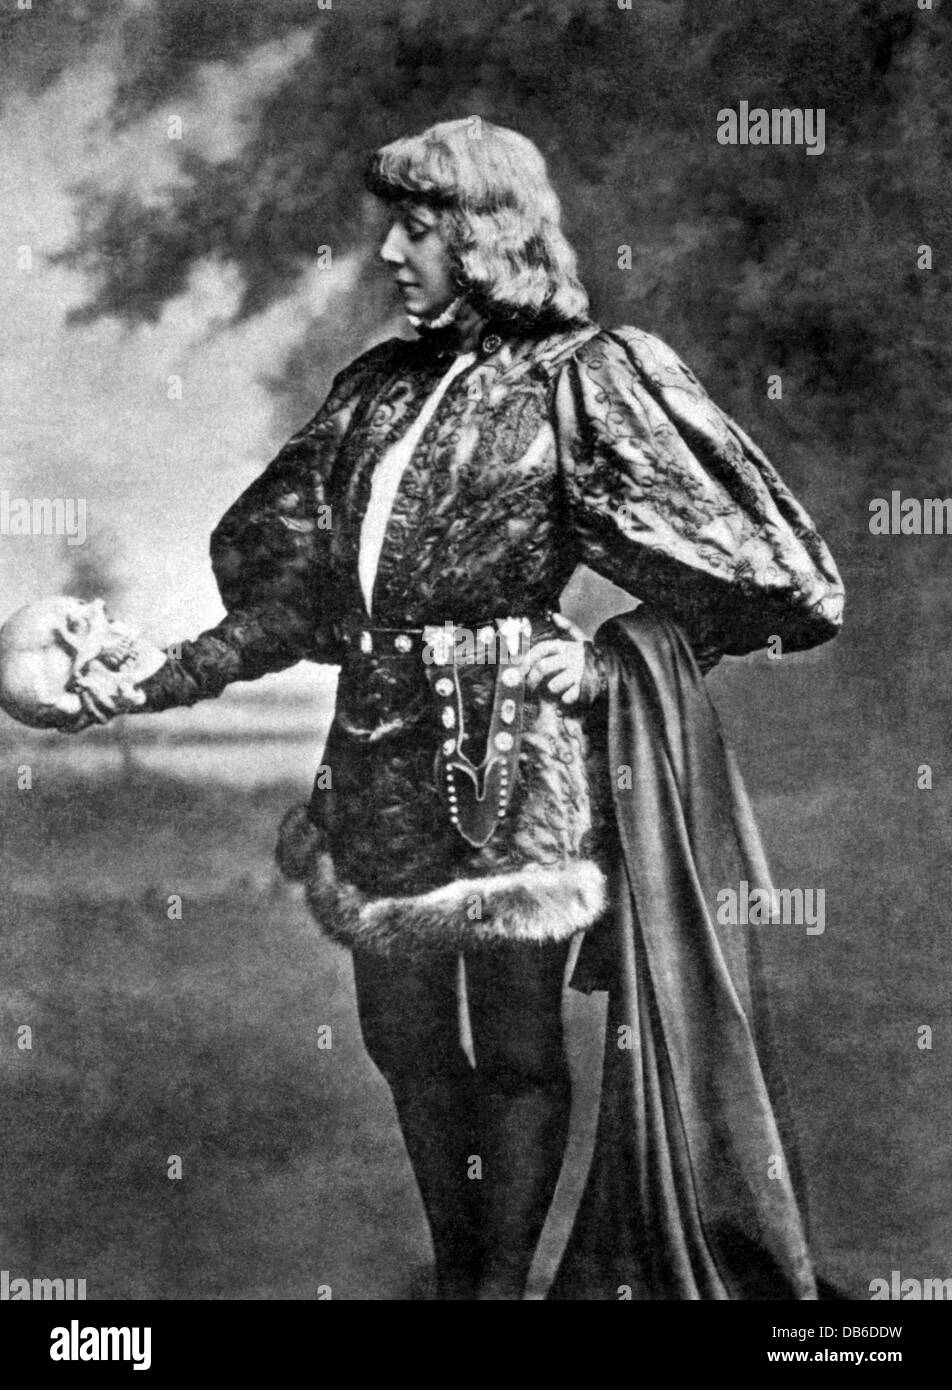 SARAH BERNHARDT (1844-1923) French stage and film actress as Hamlet  in 1889 - Stock Image